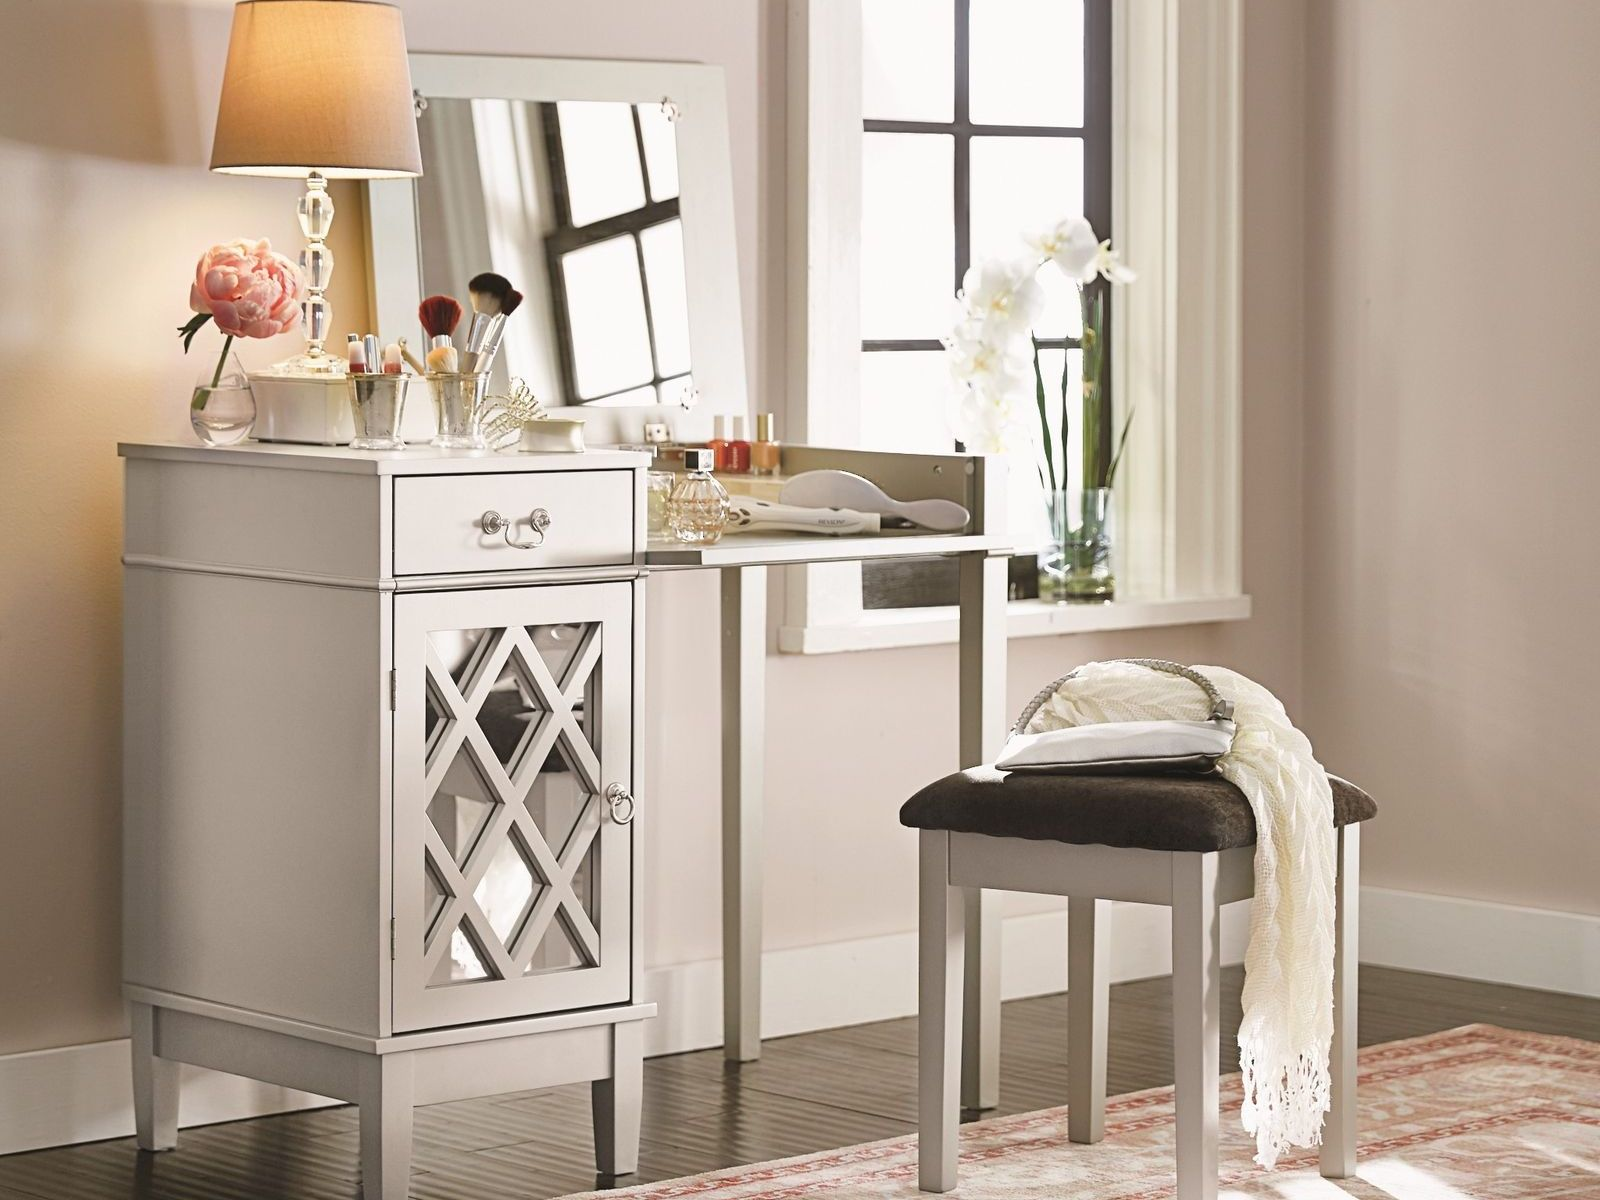 Amazing 3Pc Silver Vanity Desk Table Lattice Mirror Black Stool Set Gmtry Best Dining Table And Chair Ideas Images Gmtryco